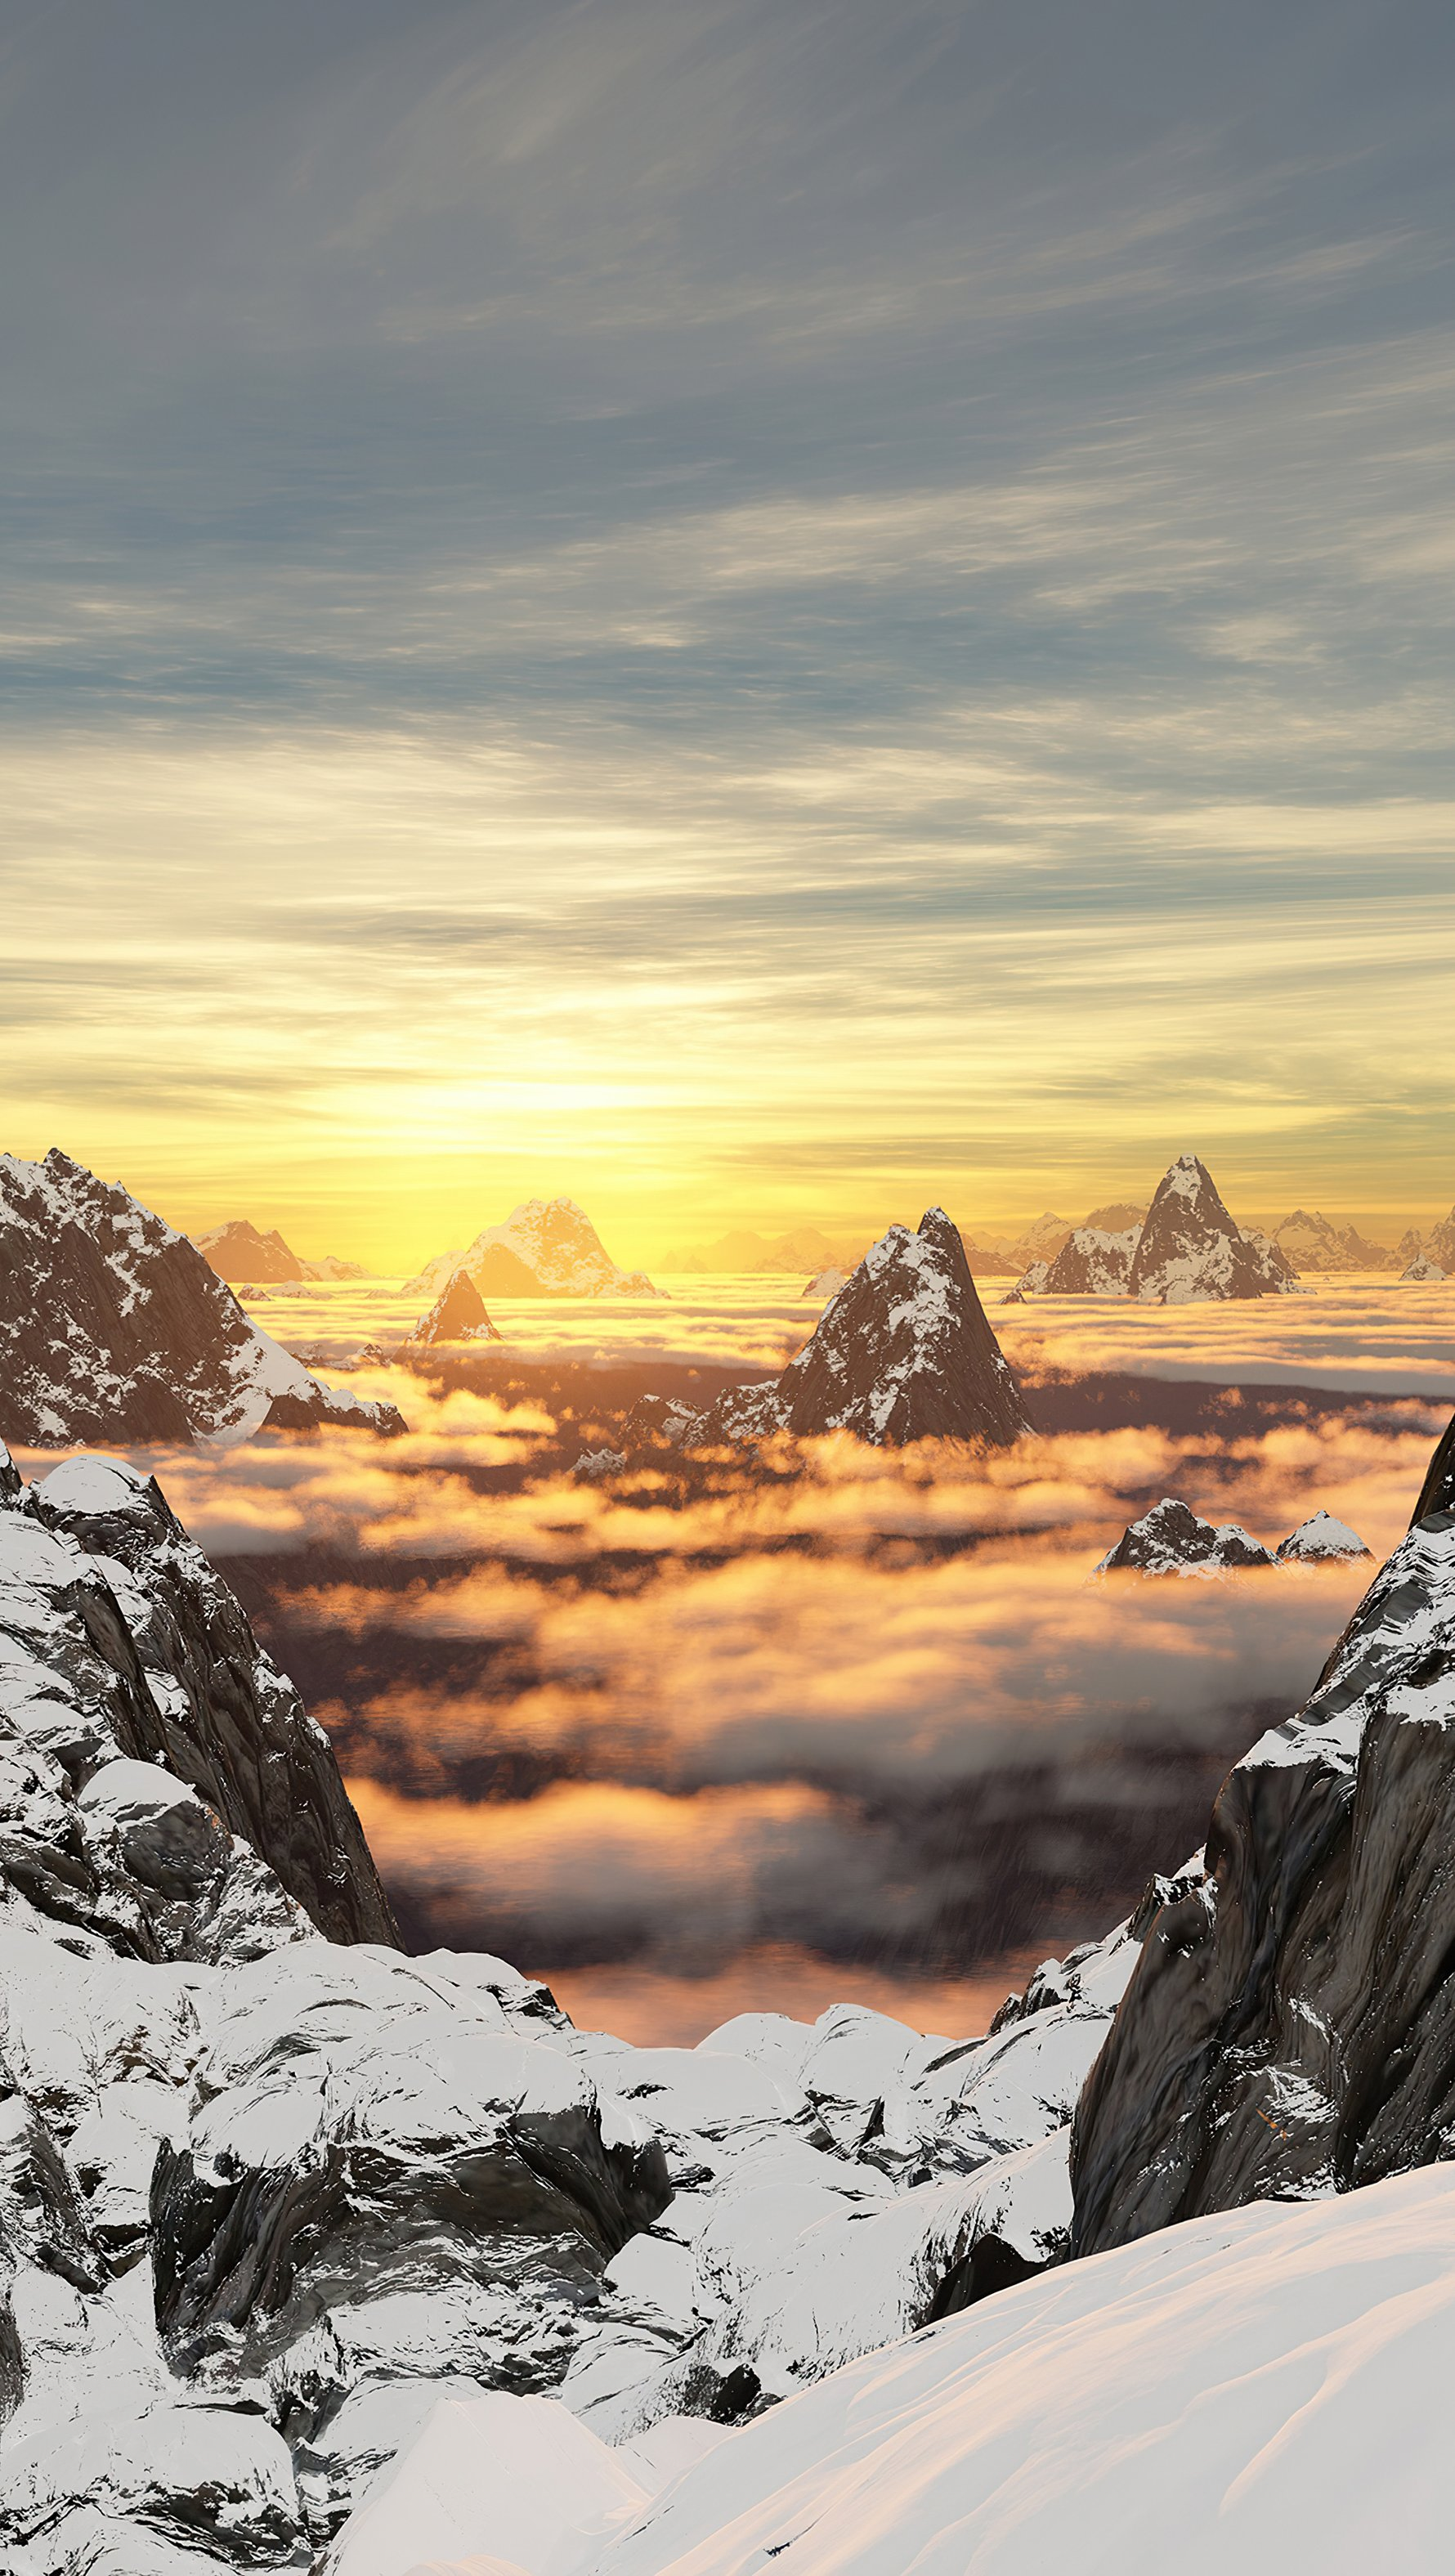 Wallpaper Mountains with snow at sunrise Vertical